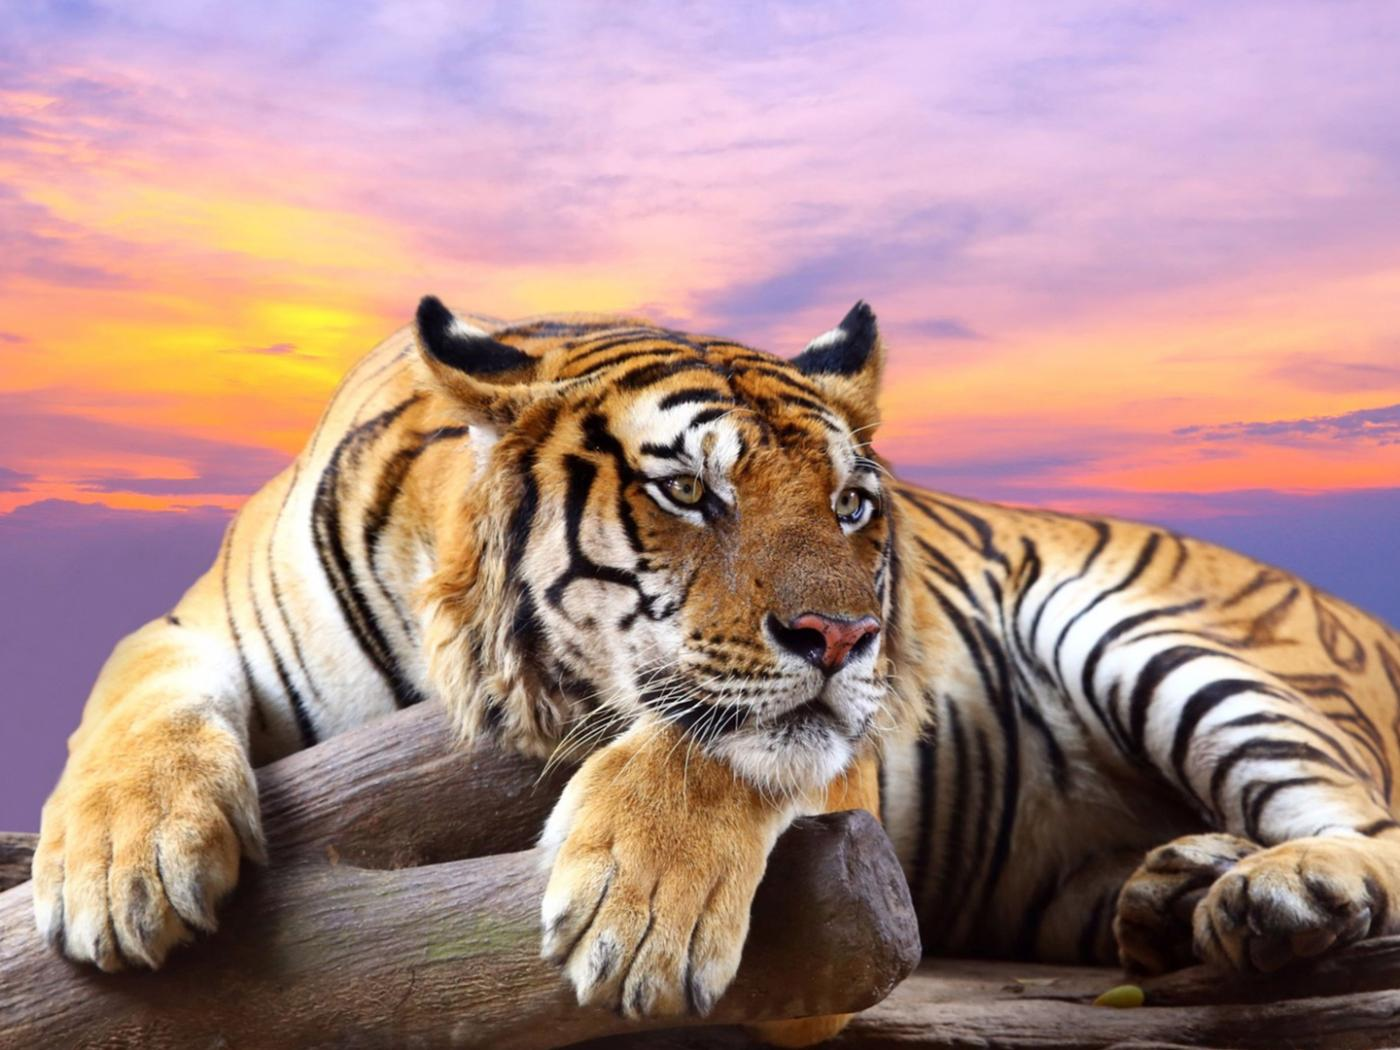 high resolution animal wallpaper – tiger in wild | hd wallpapers